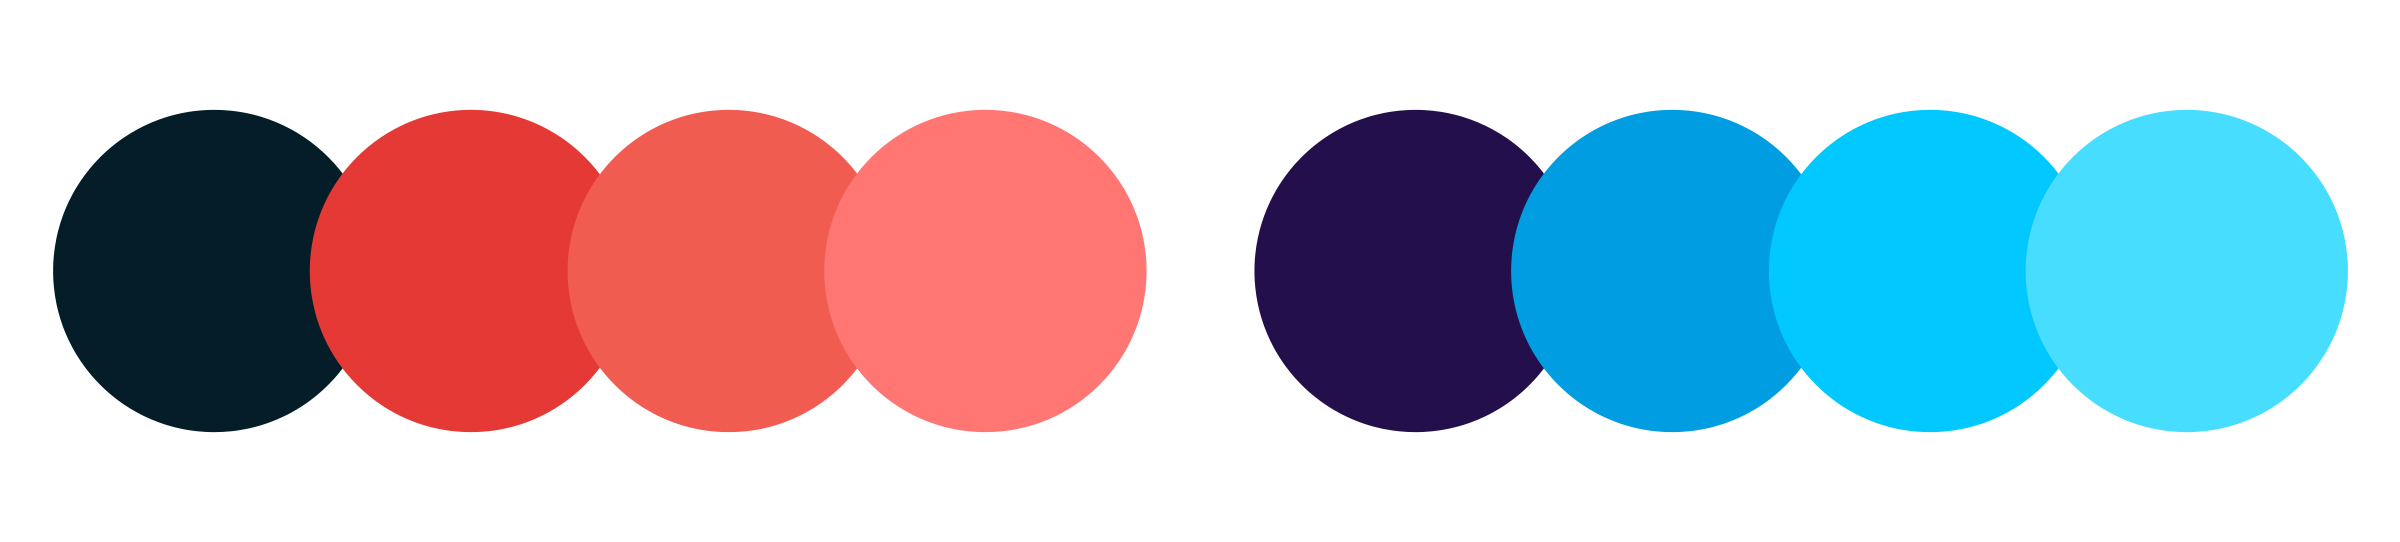 EvenUp colour palette, navy blue and reds, dark purple and blues